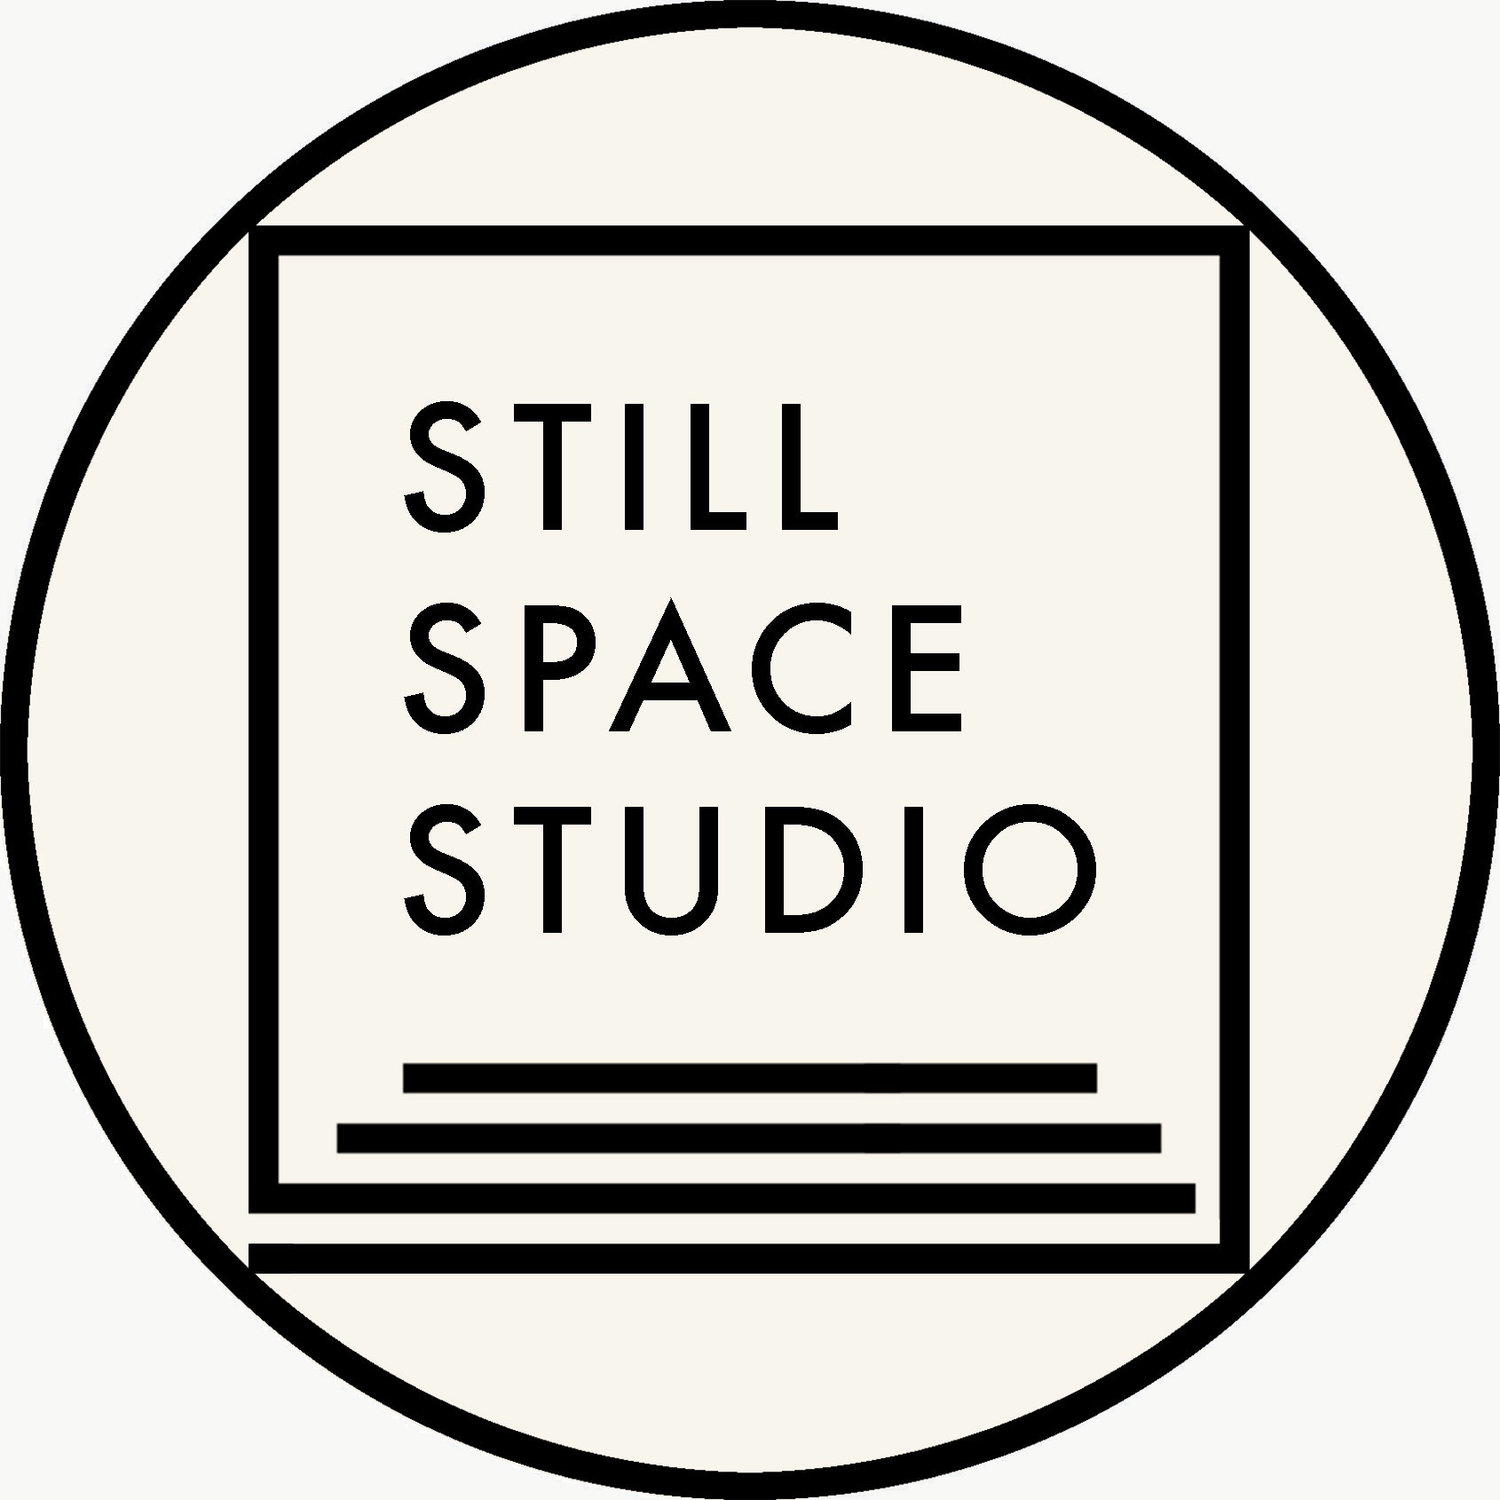 Still Space Studio